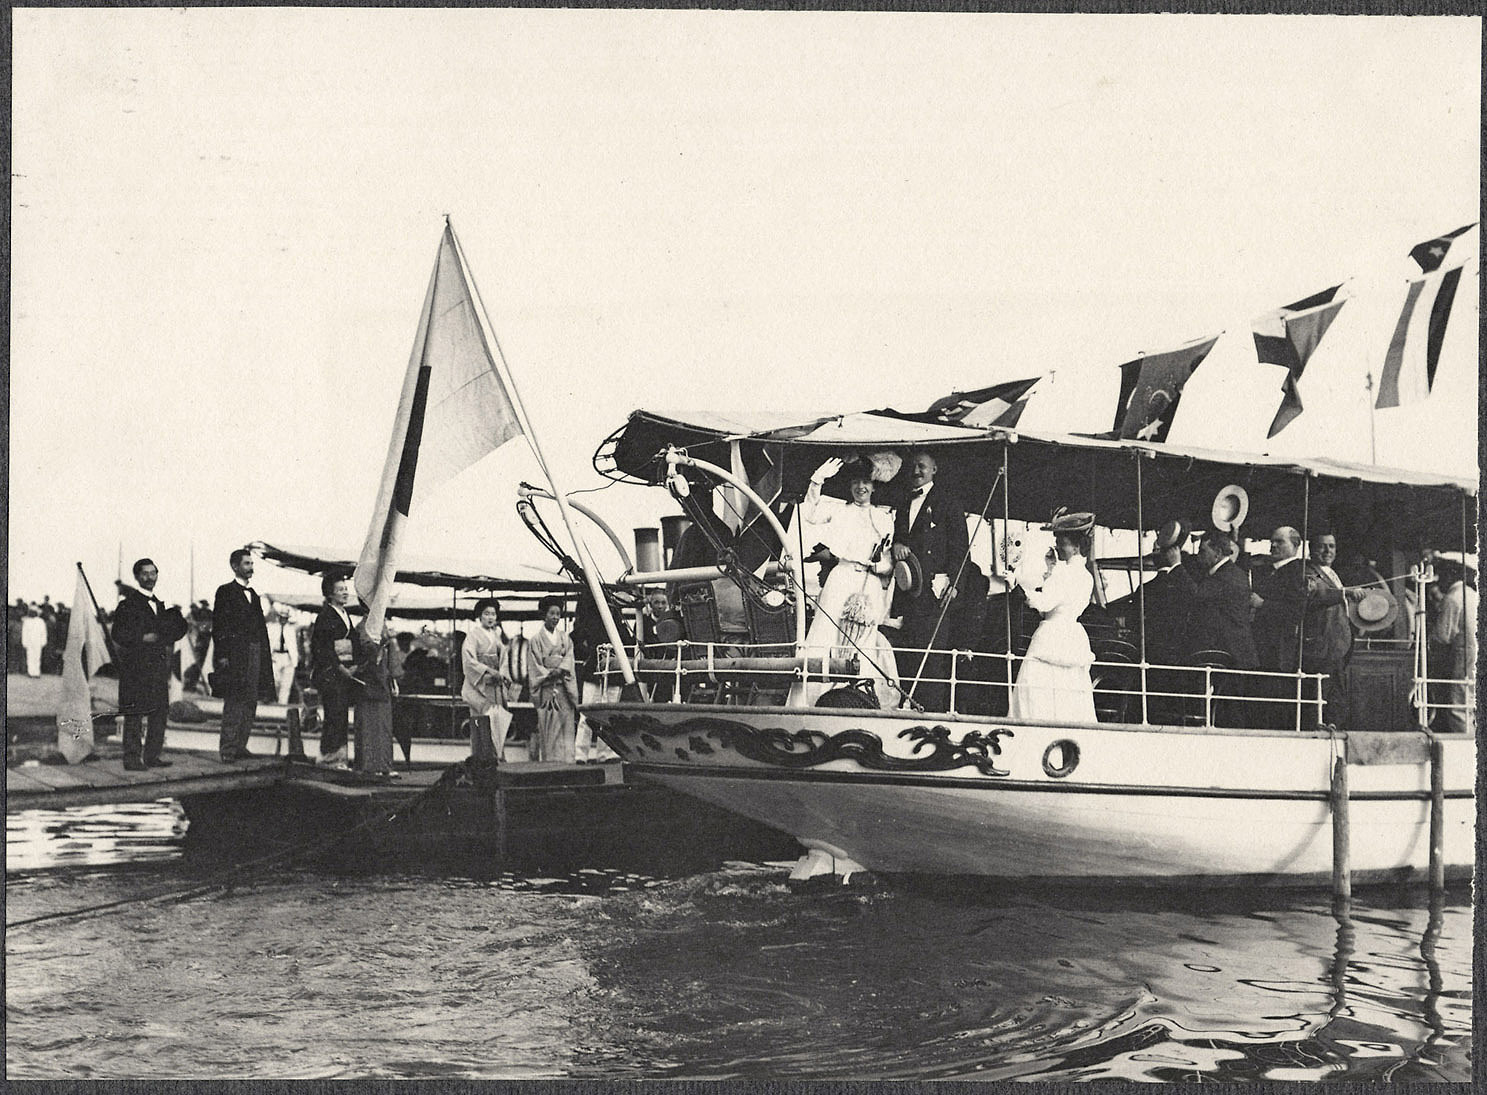 Alice Roosevelt and others wave from launch at Kobe port en route to S.S Manchuria